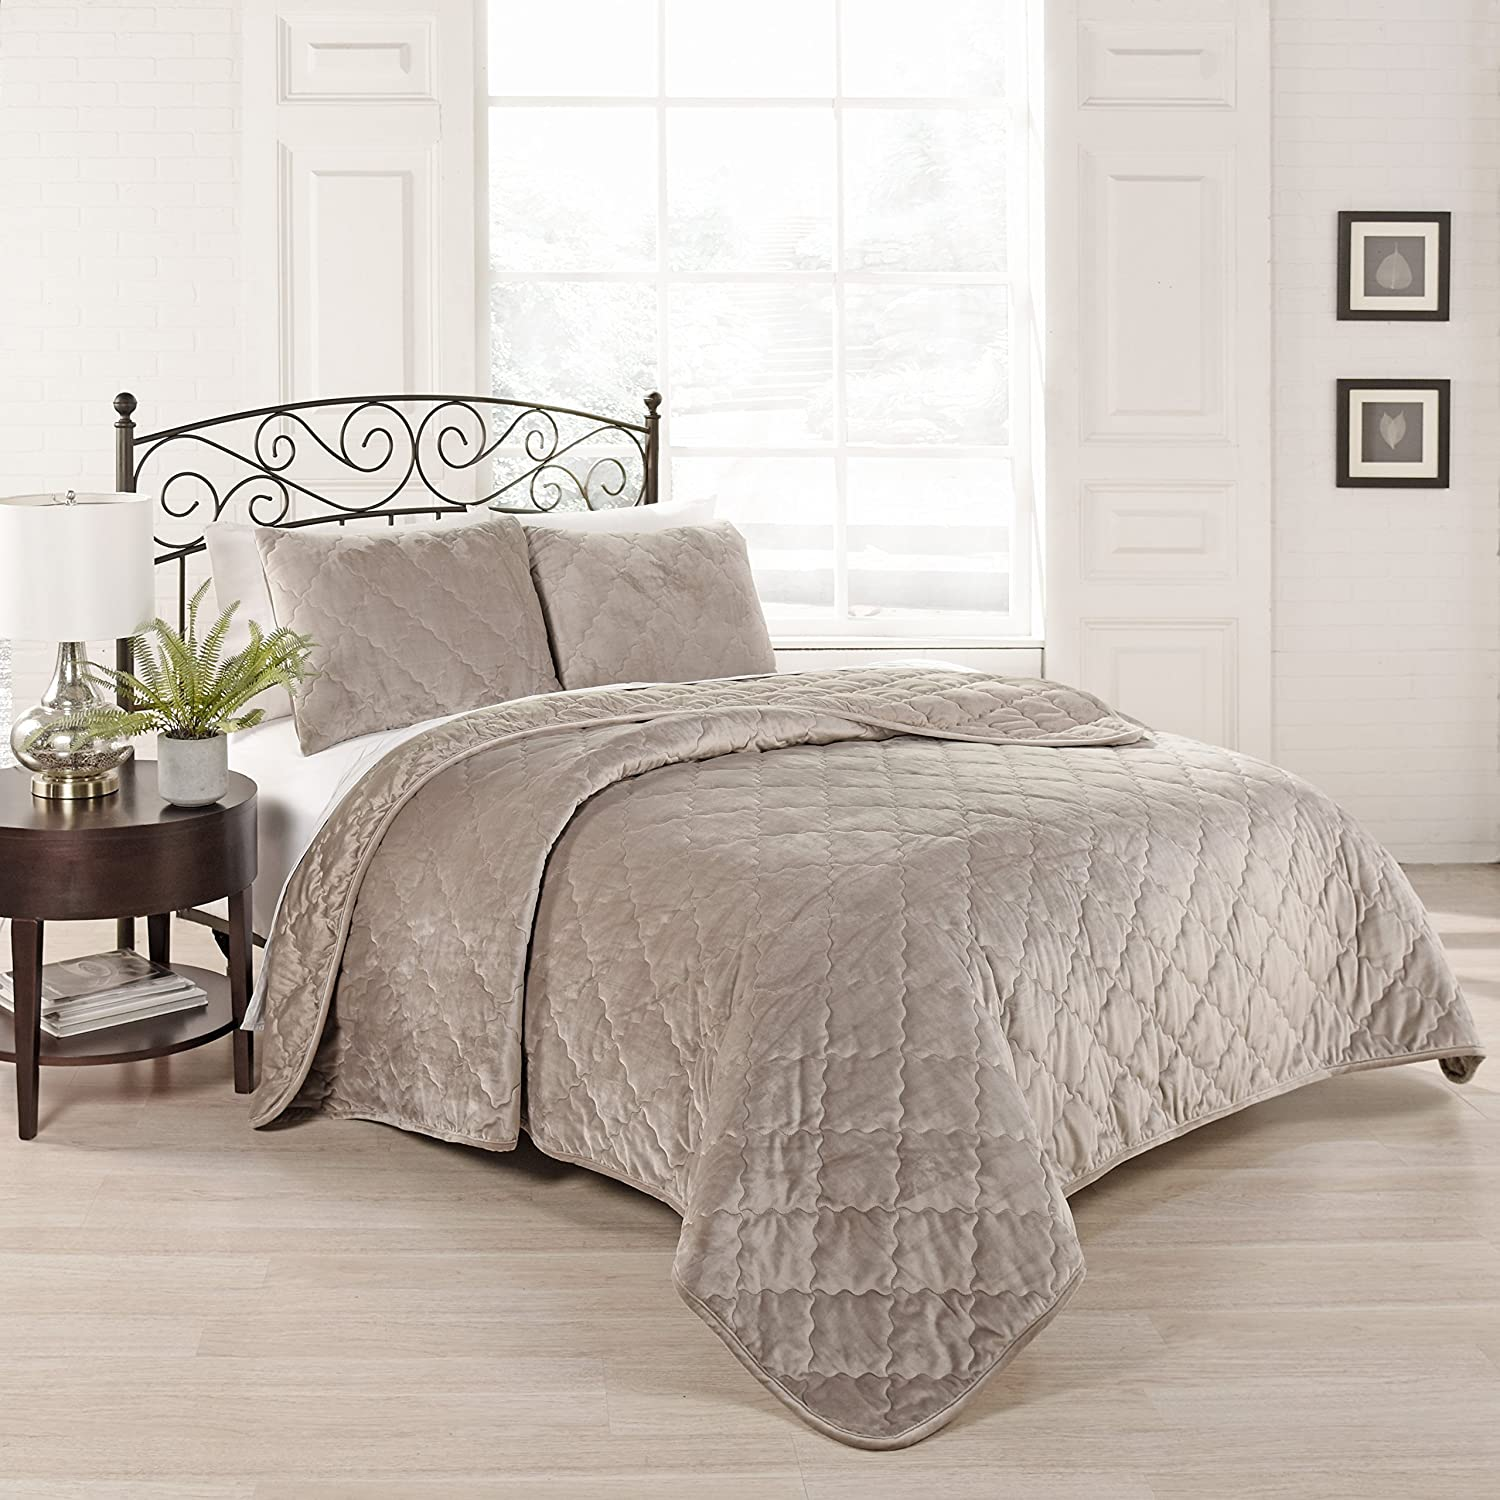 Smoke Ellery Homestyles 15797beddkngsmk Beautyrest Casimir Plaid 108 Inch By 90 Inch 3 Piece King Comforter